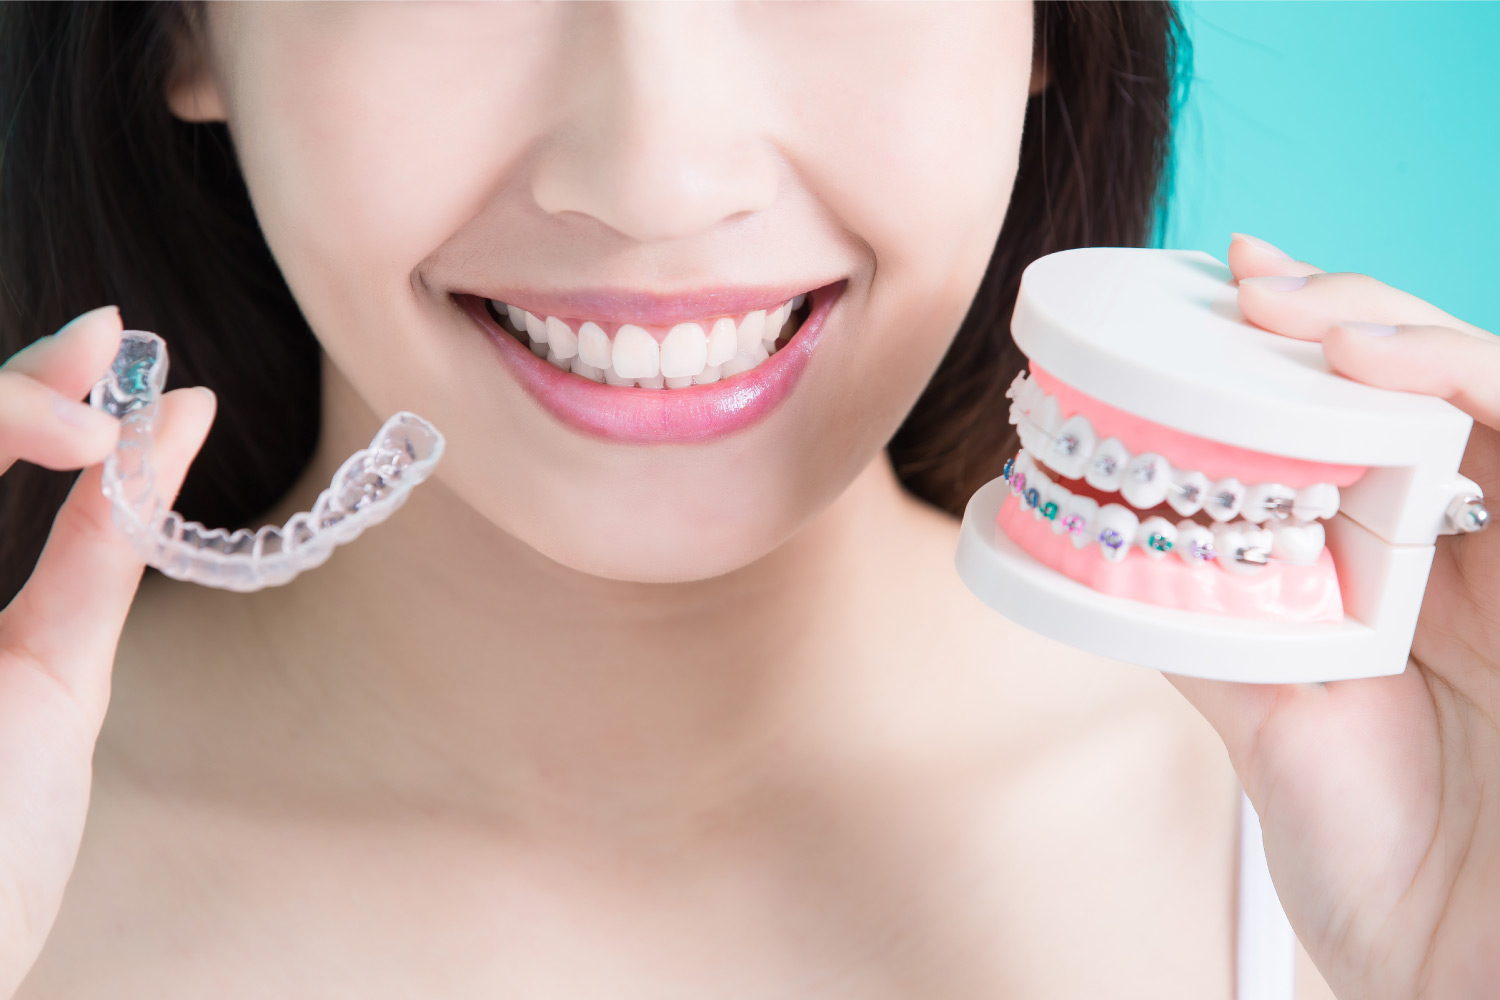 Woman holds Invisalign aligners and braces to compare the two orthodontic treatments